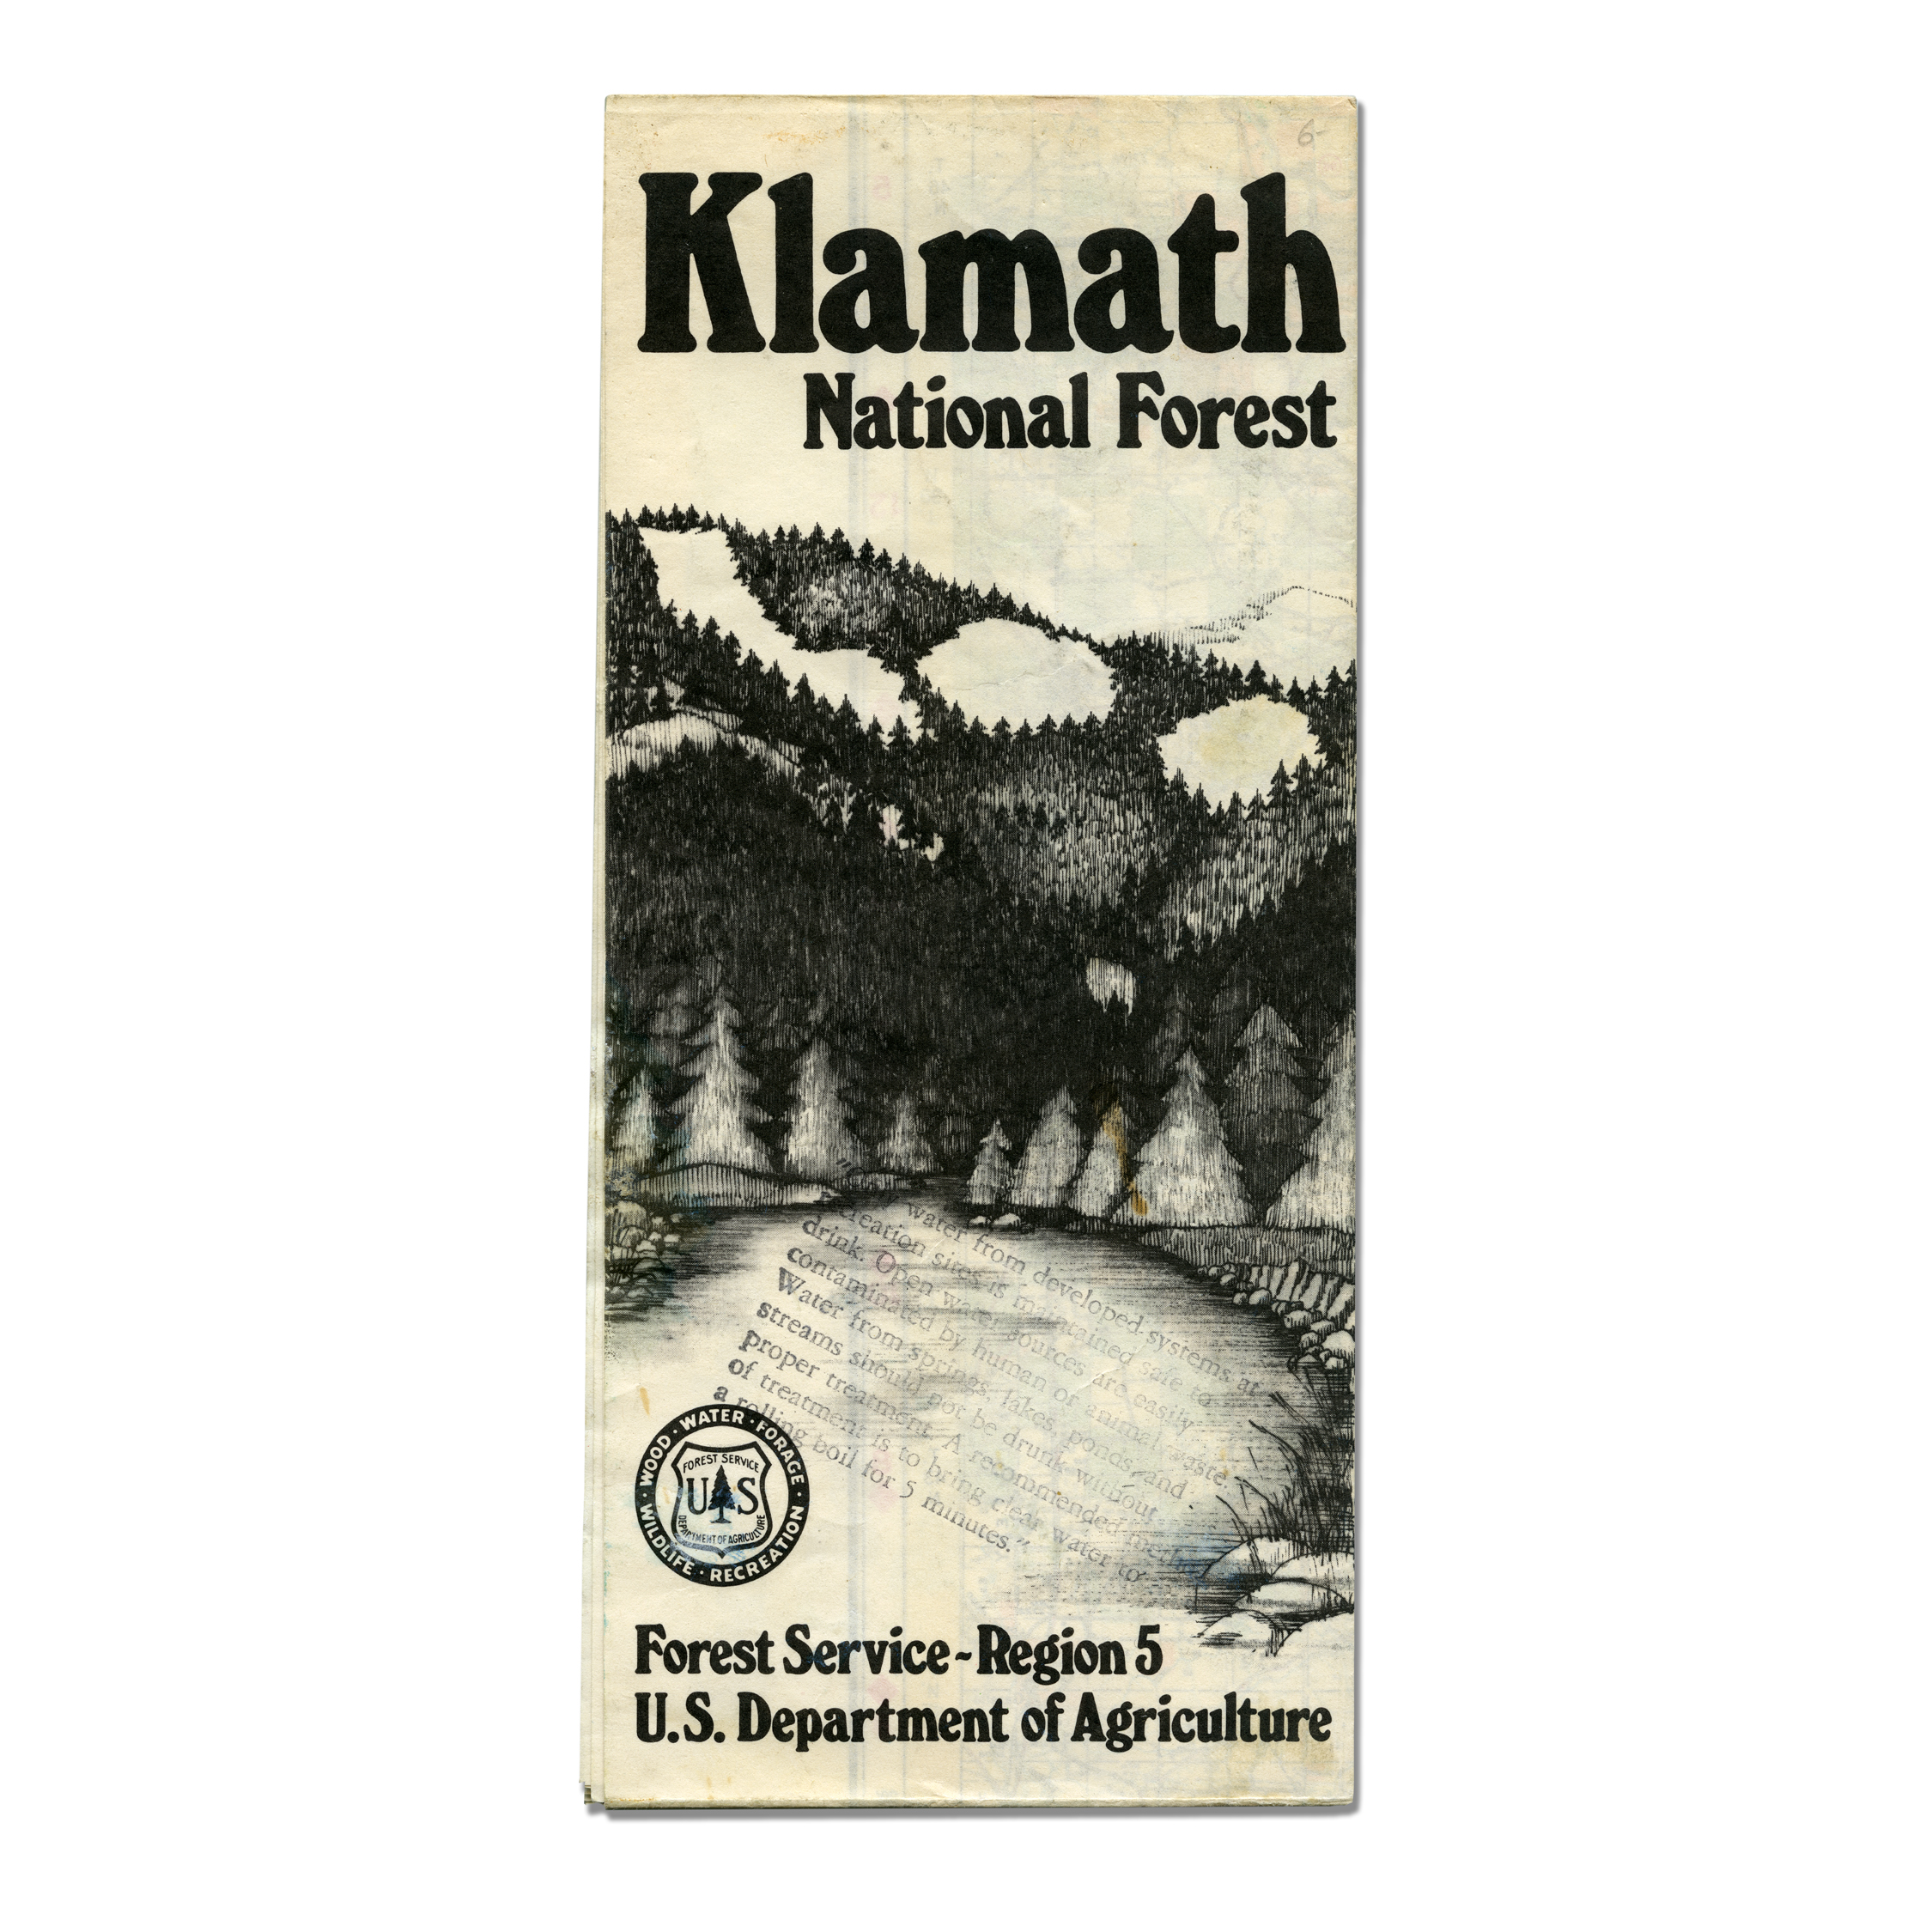 1979_klamath_national_forest_brochure.jpg